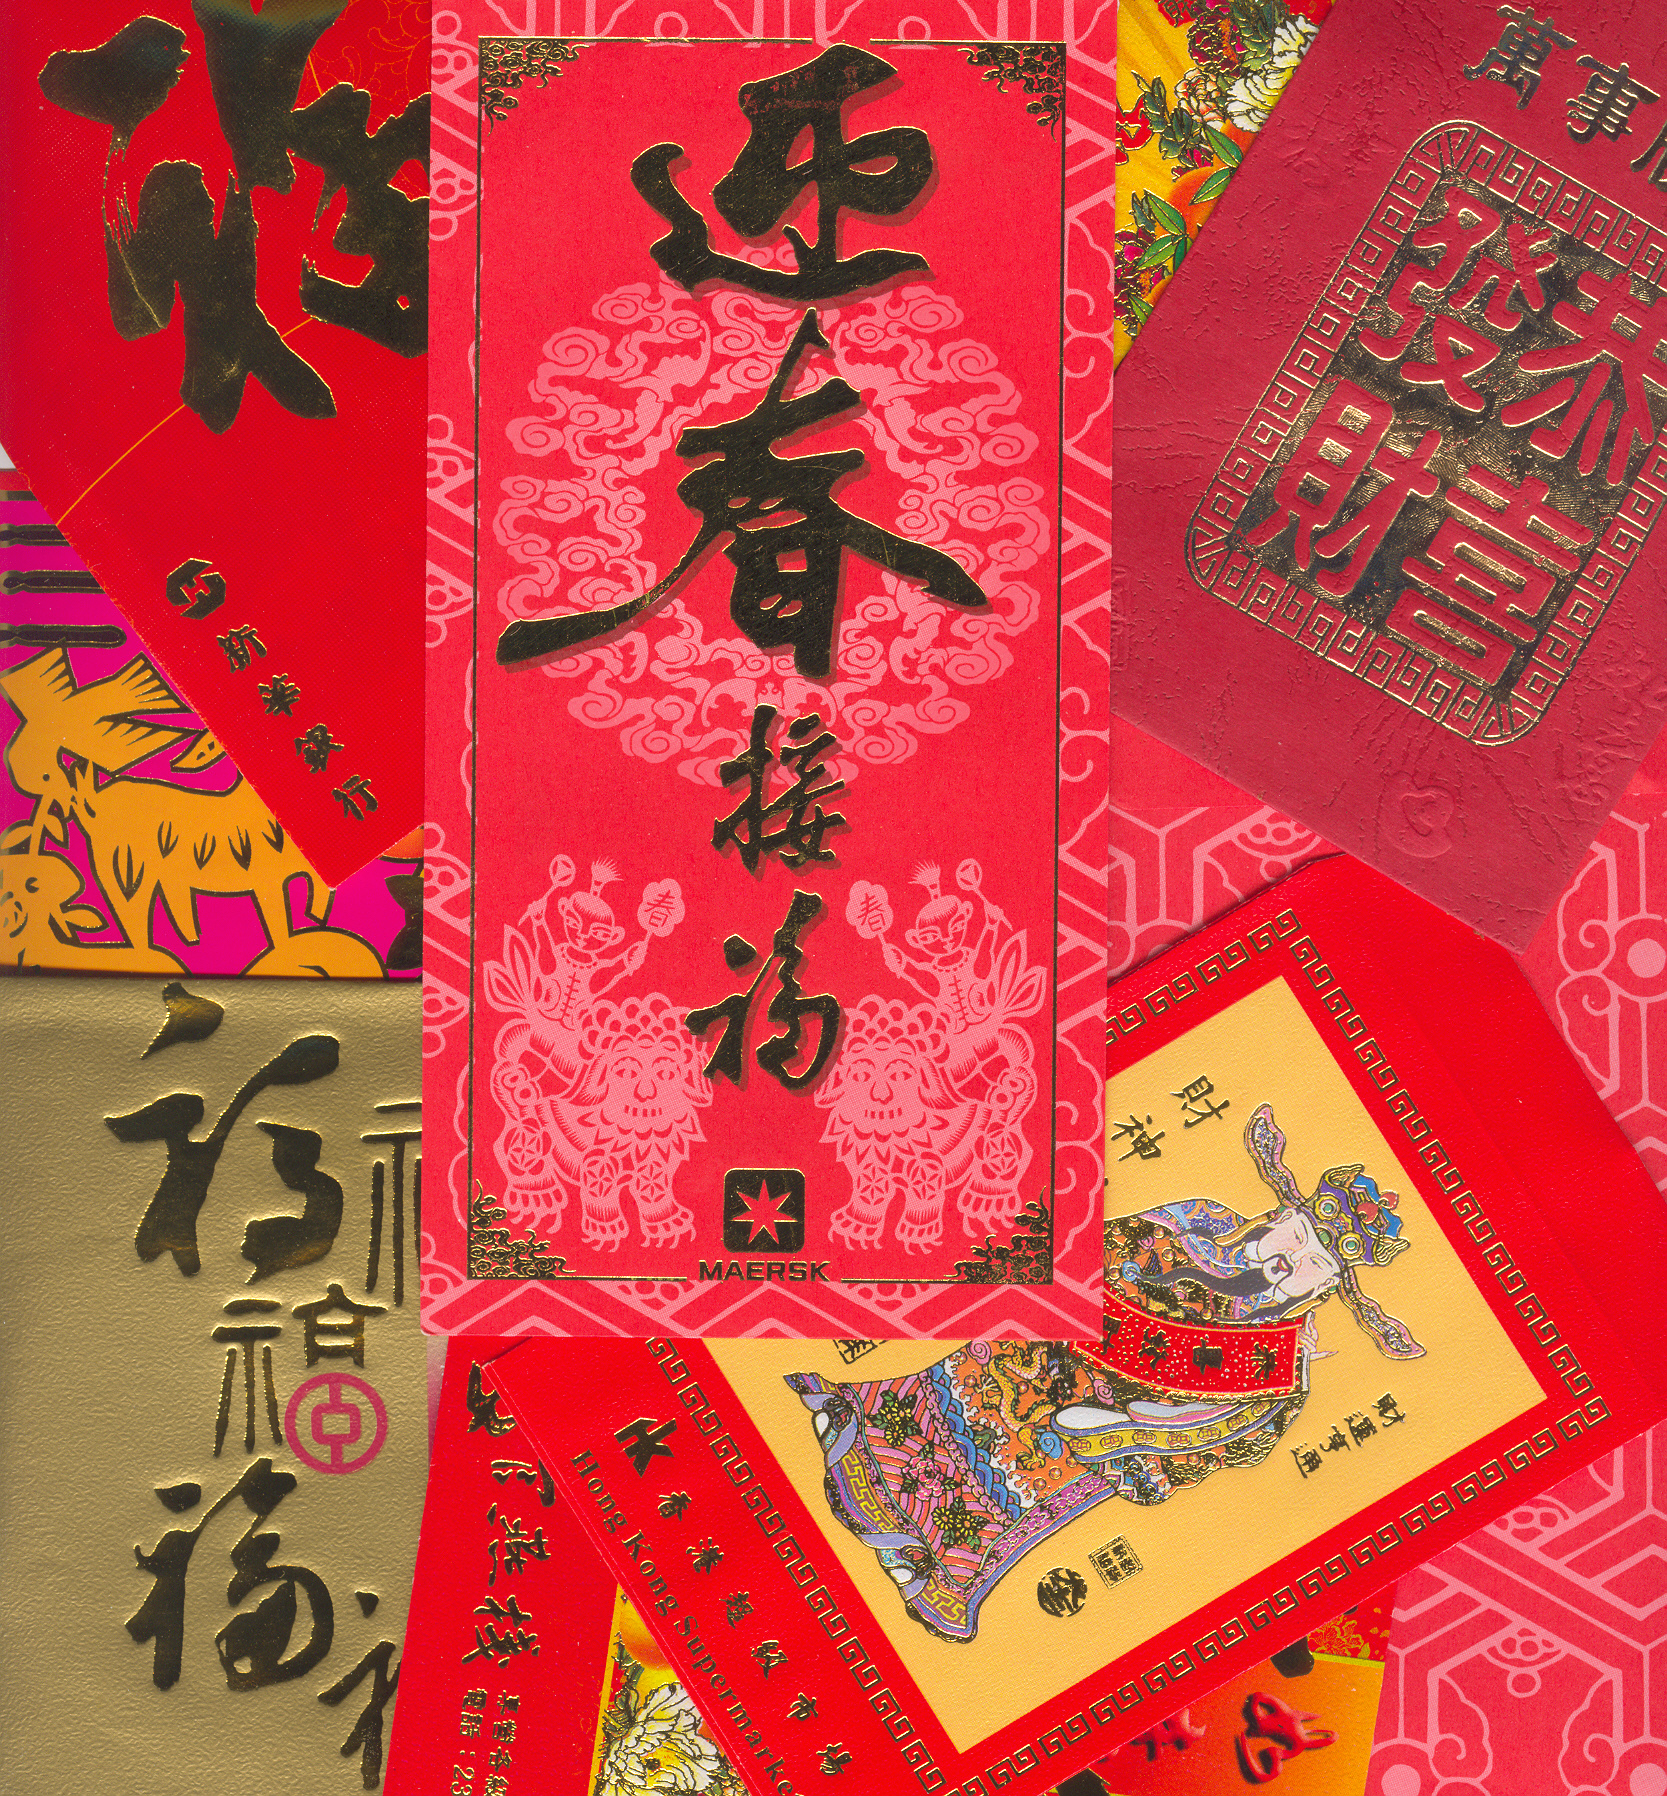 Red envelope, hongbao, lai see